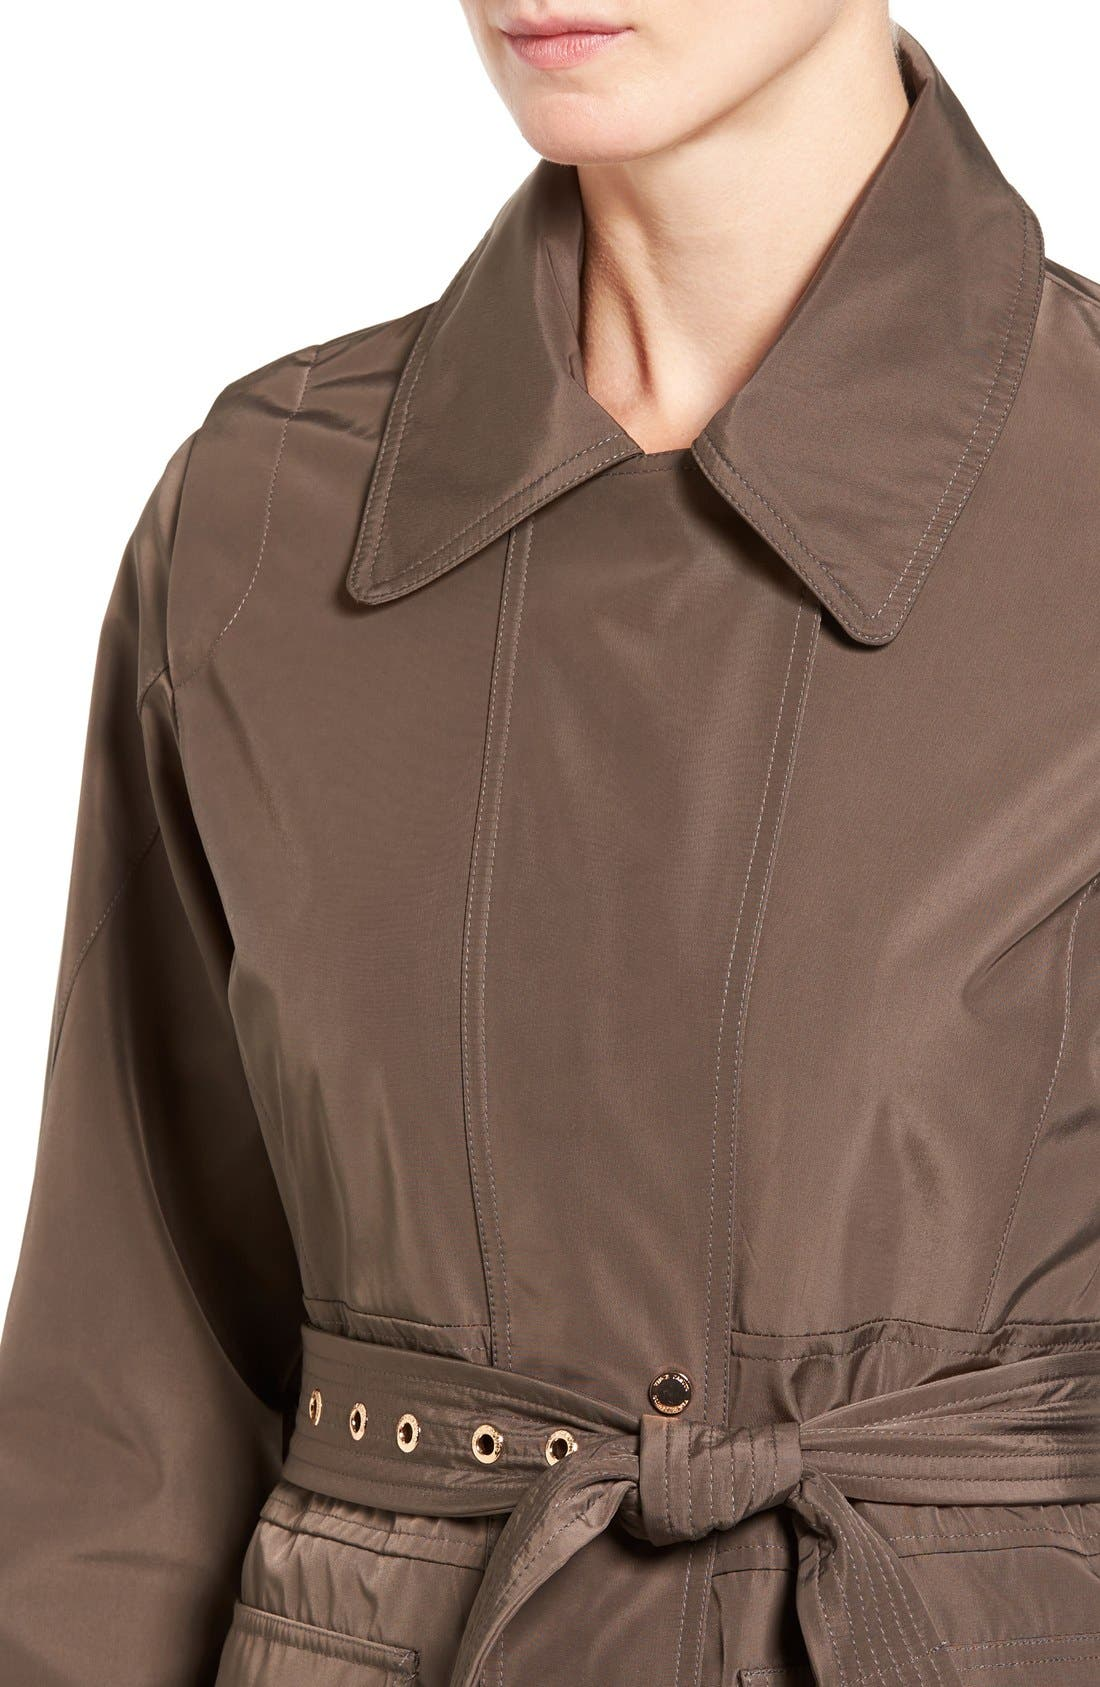 Hooded Trench Coat,                             Alternate thumbnail 4, color,                             Dark Taupe